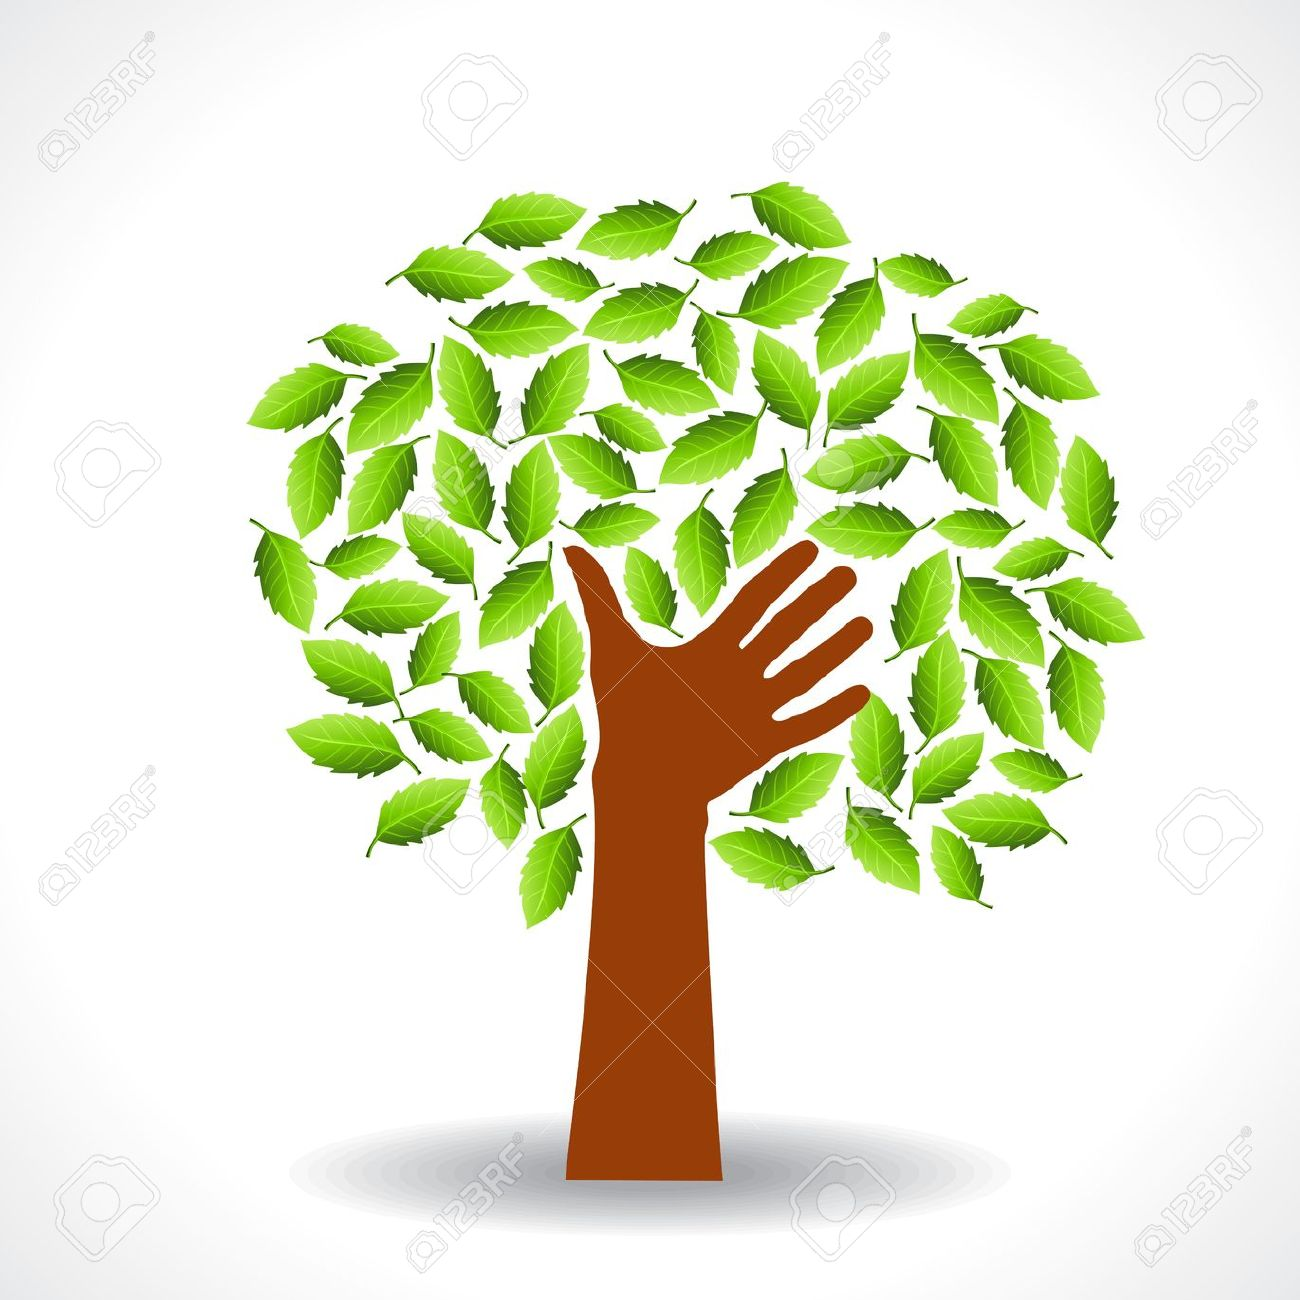 Clipart on save energy save environment jpg Save Environment Save Tree Royalty Free Cliparts, Vectors, And ... jpg